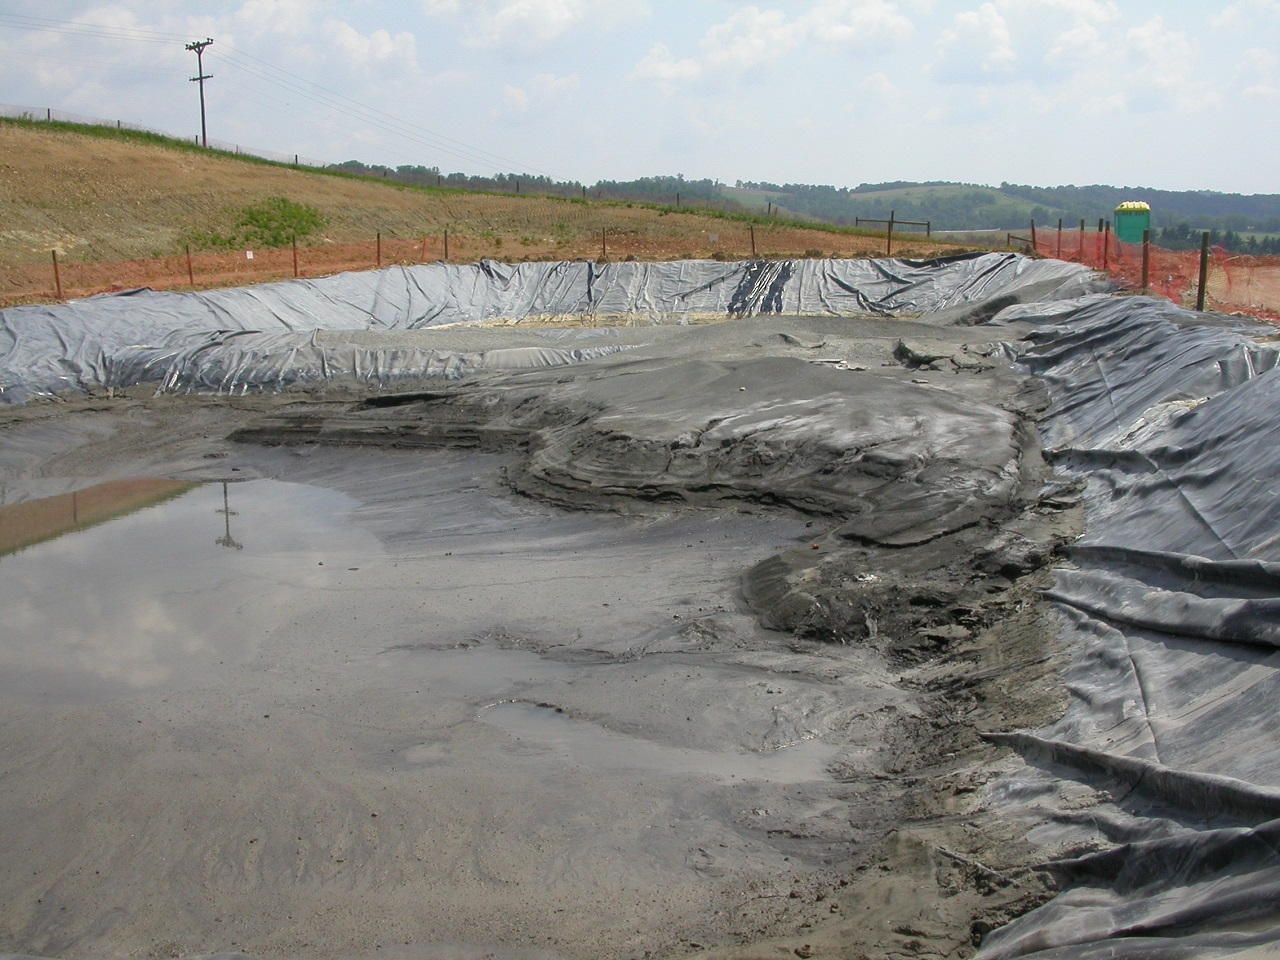 Forums on New Reports on the Health and Economic Impacts of Fracking in Pennsylvania7